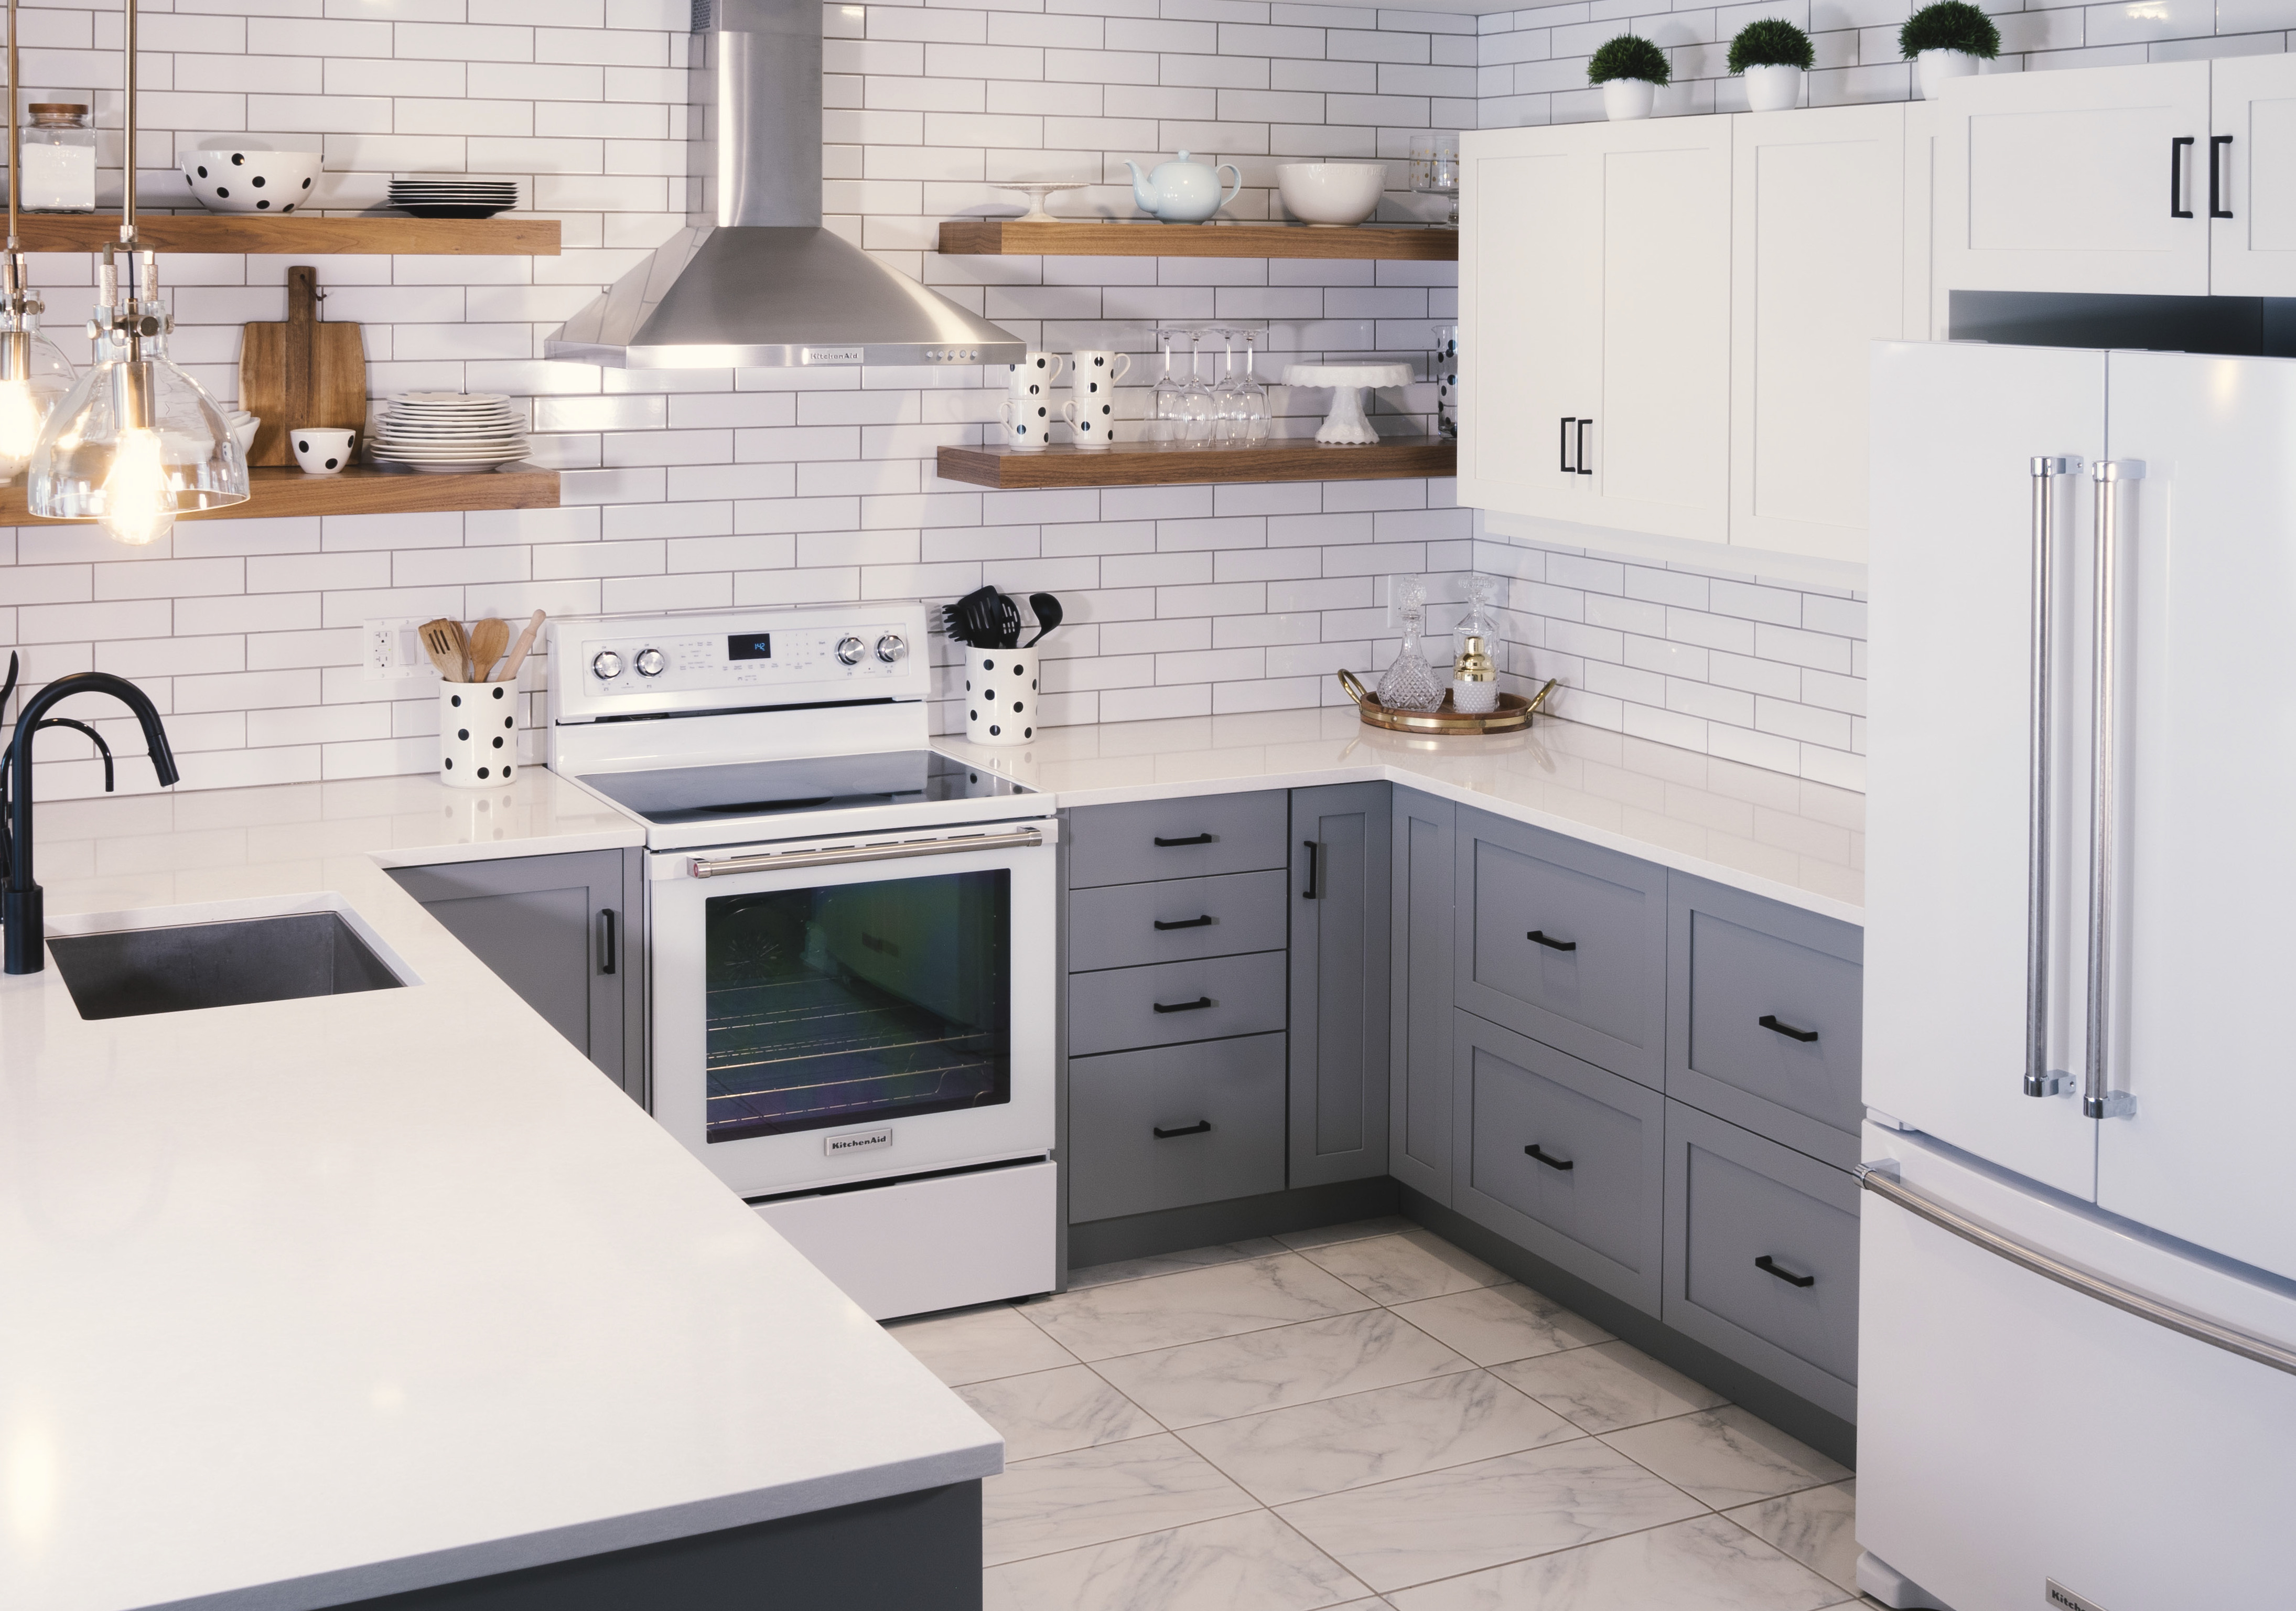 A kitchen design featuring Deslaurier's custom cabinets